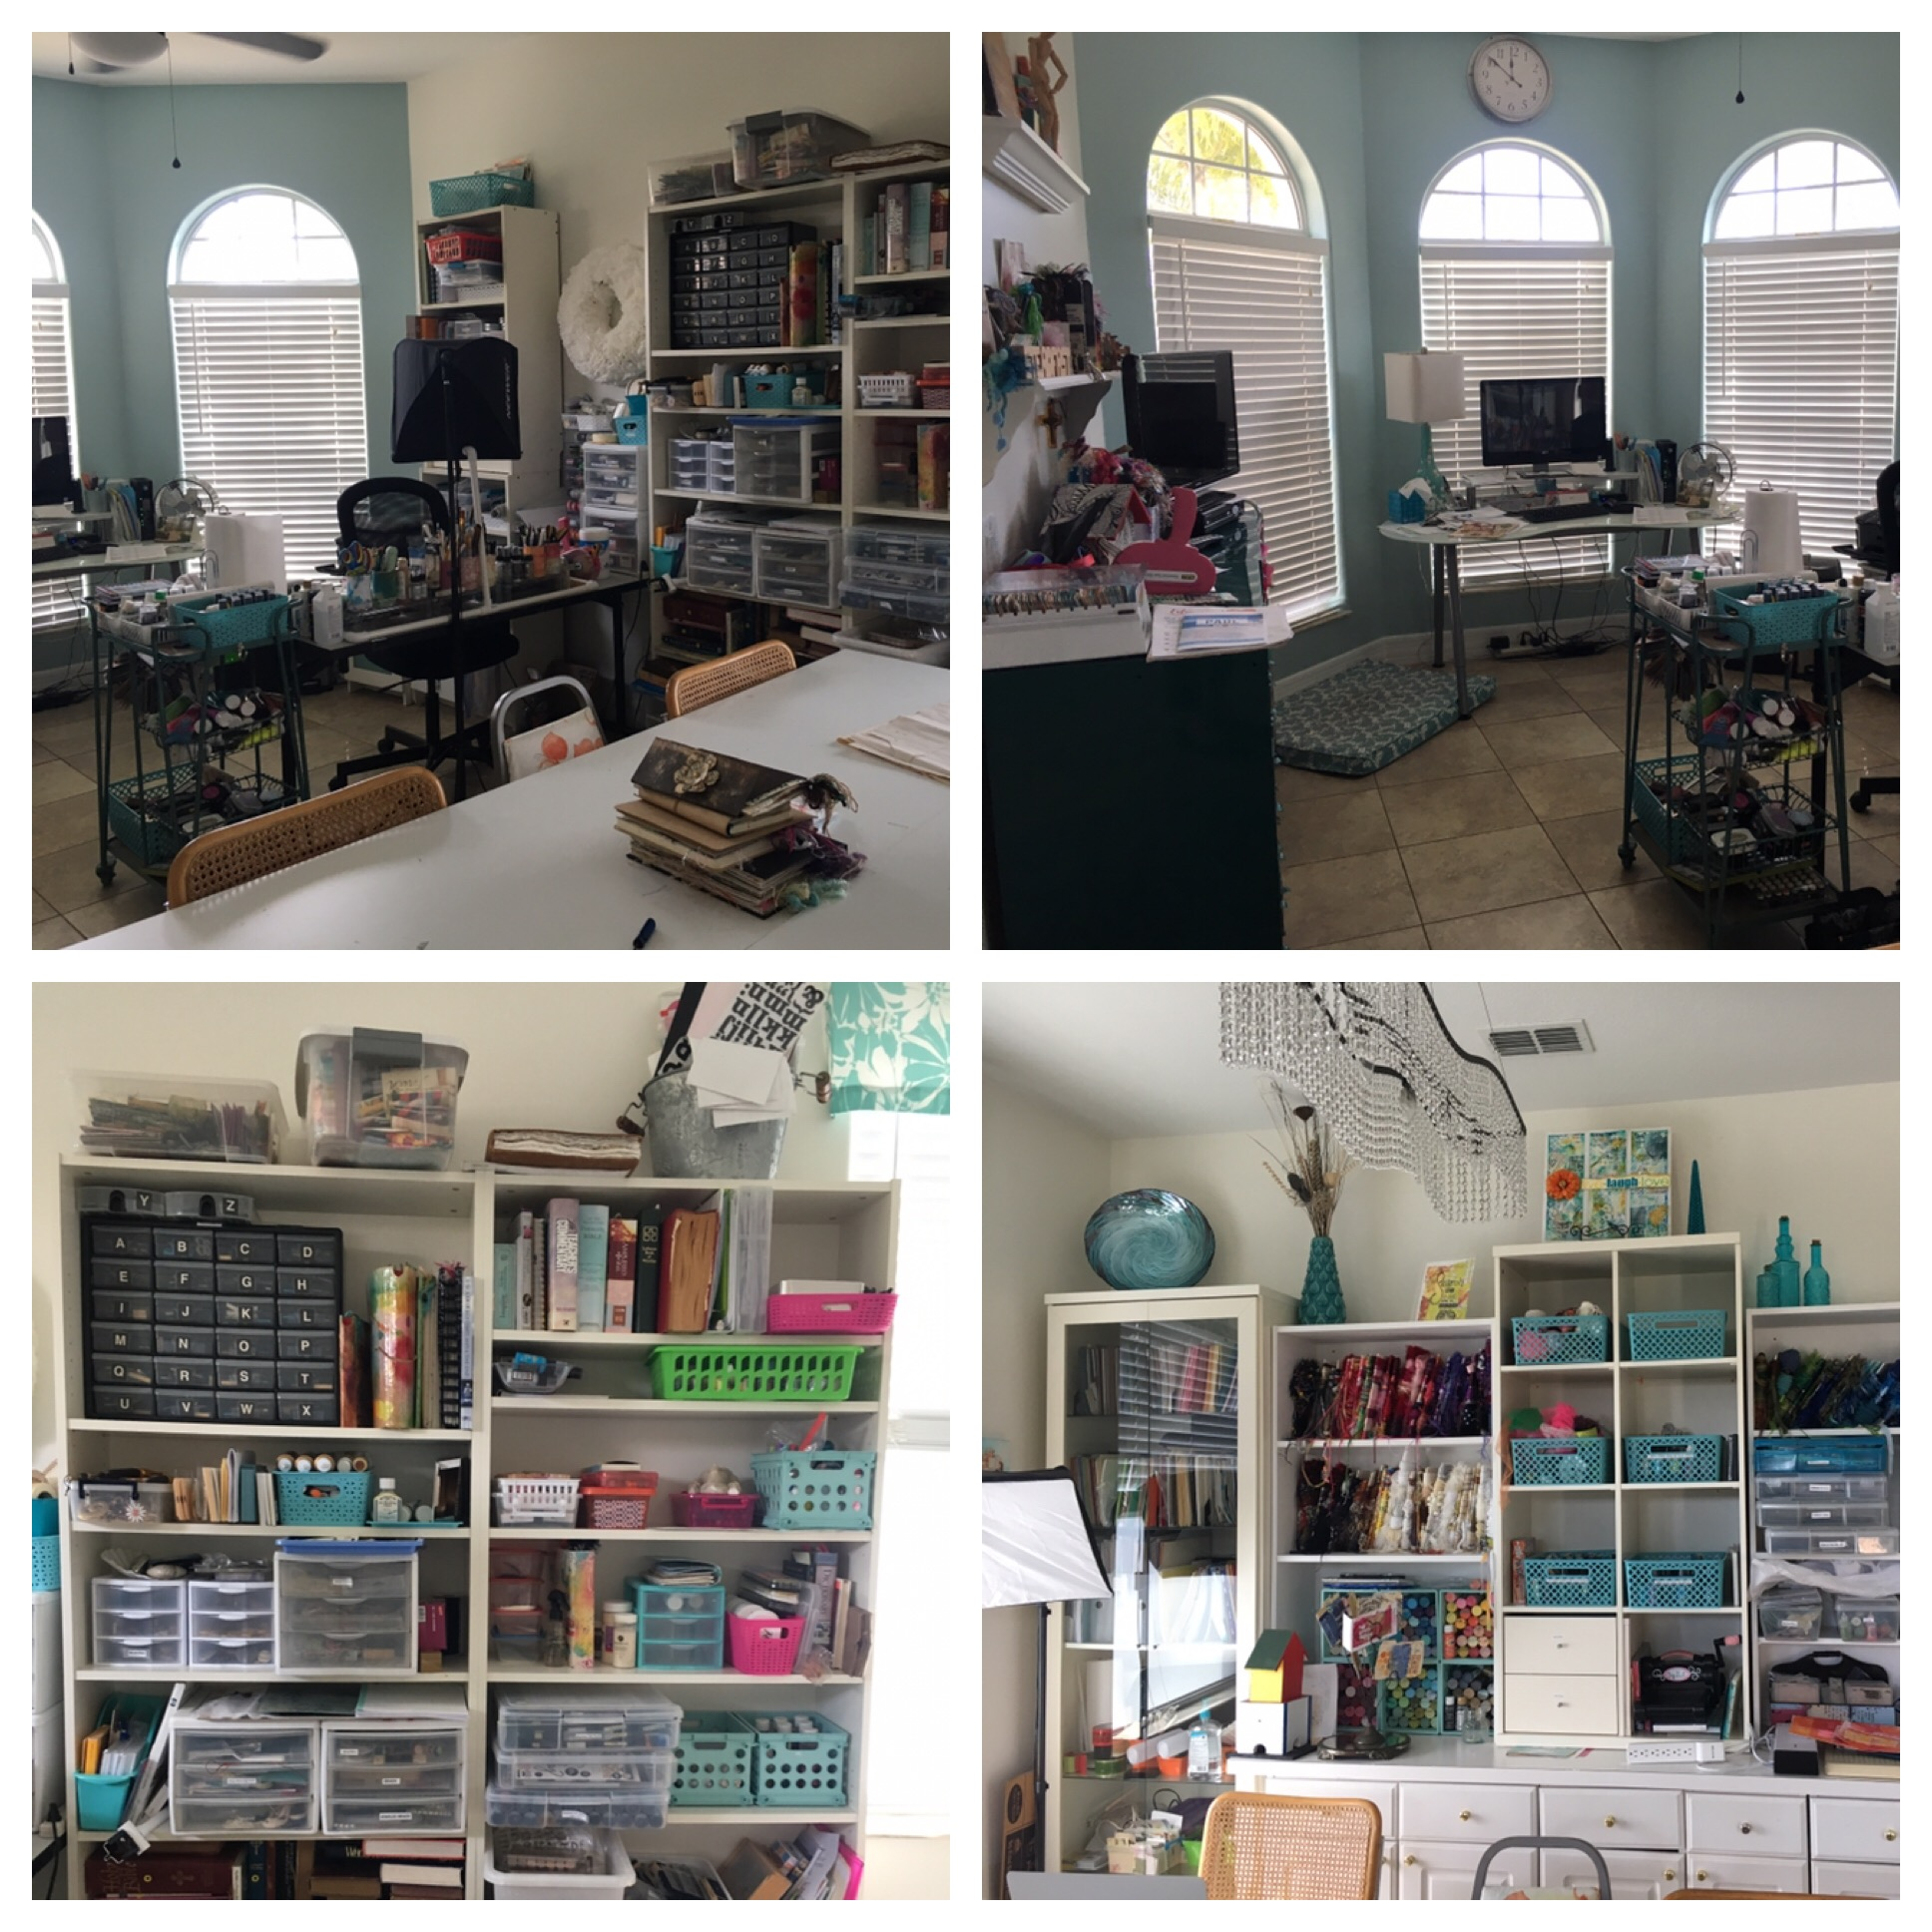 Diane as a beautiful studio and keeps her supplies organized and ready to grab for creating the next project.